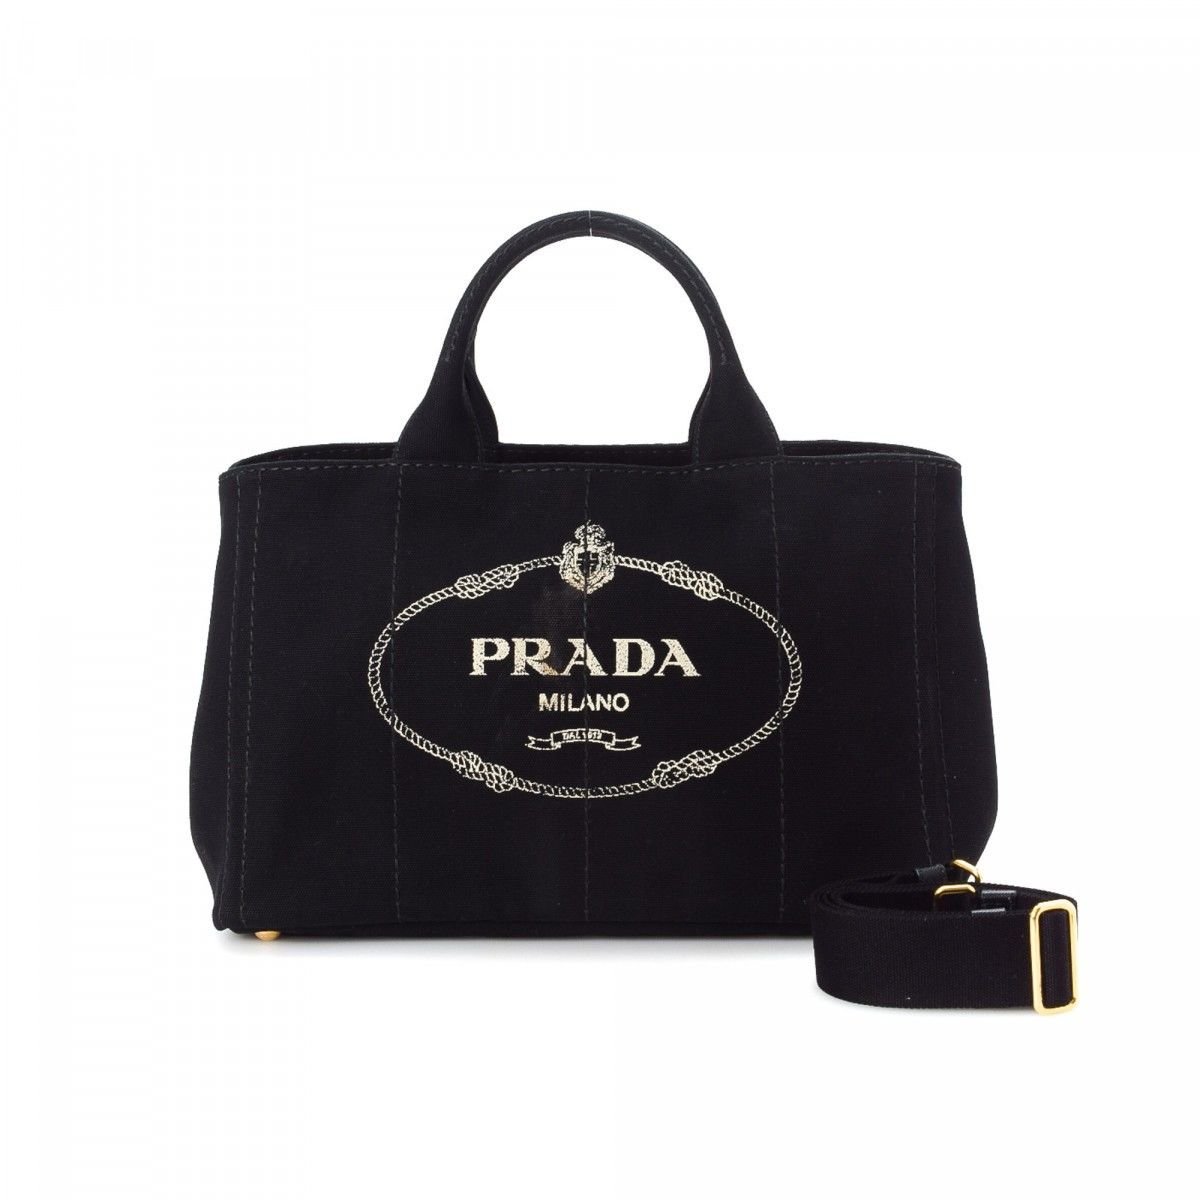 Black Giardiniera shopping bag Prada cAZvD